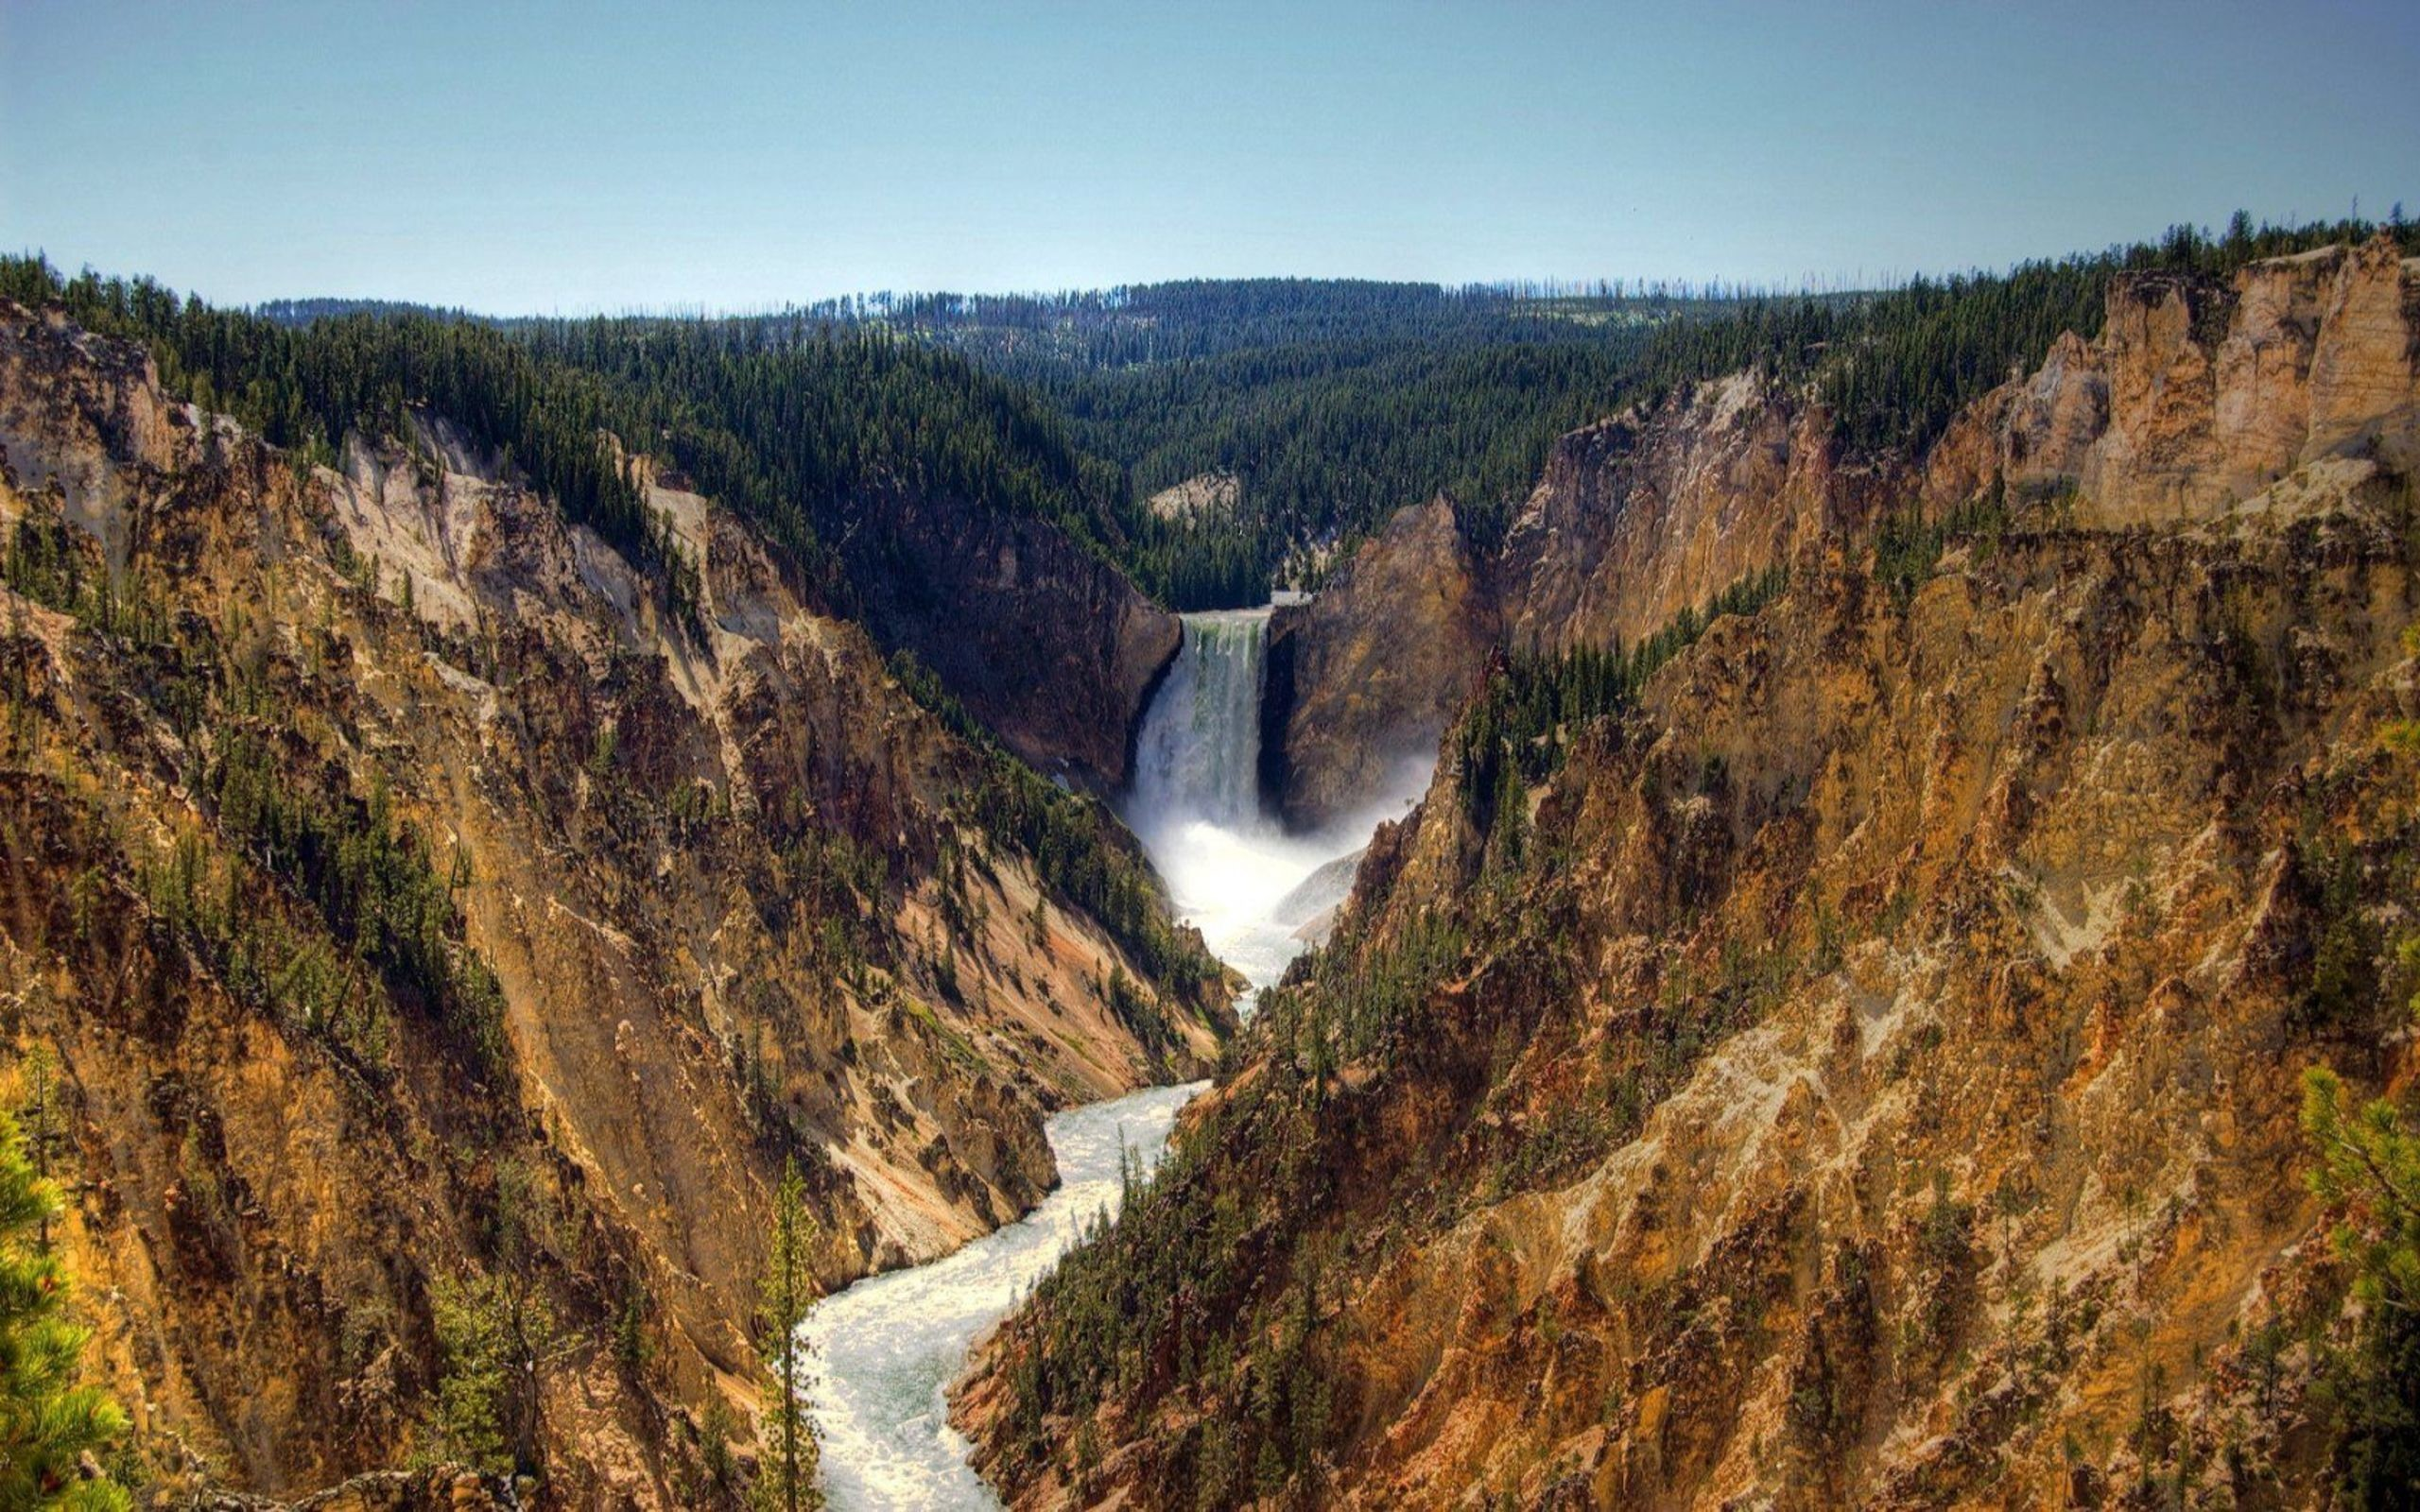 2560x1600 Upper Yellowstone Falls, Grand Canyon National Park, Chute, Escarpment,  Denali National Park